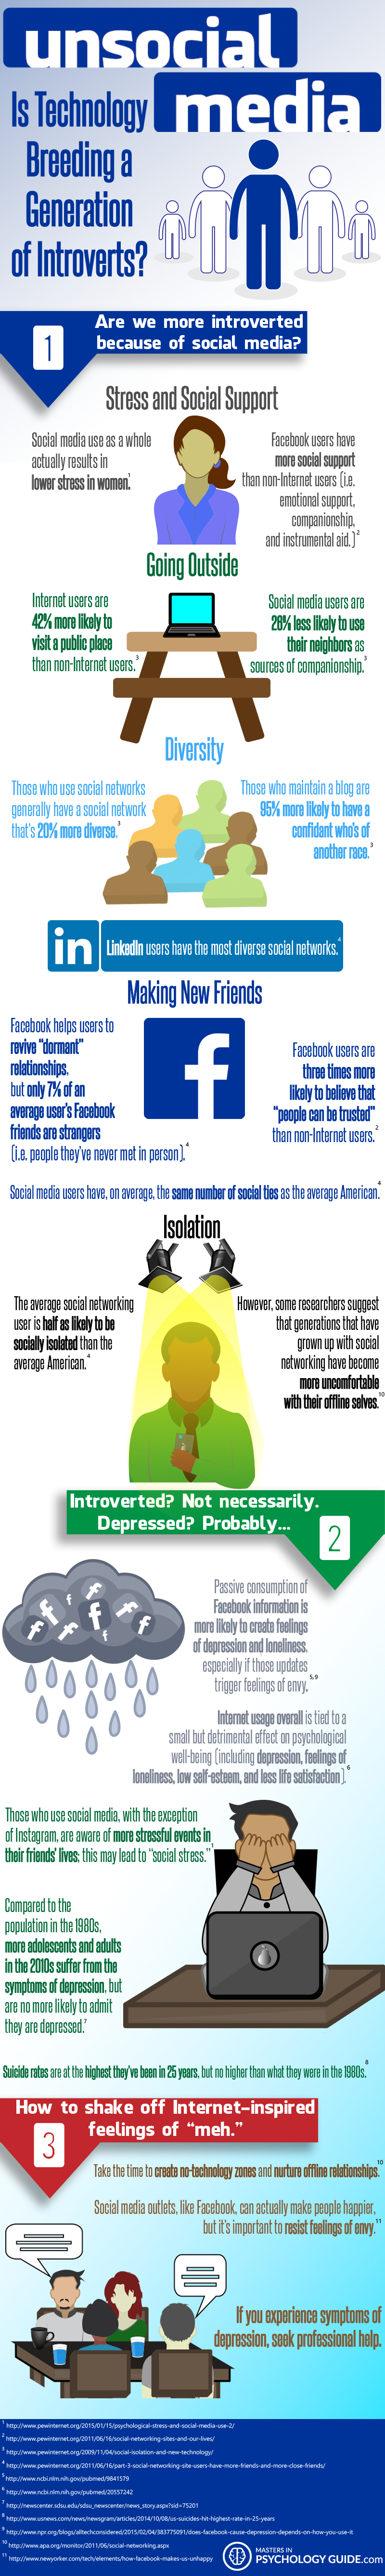 Unsocial Media Is Technology Breeding a Generation of Introverts?